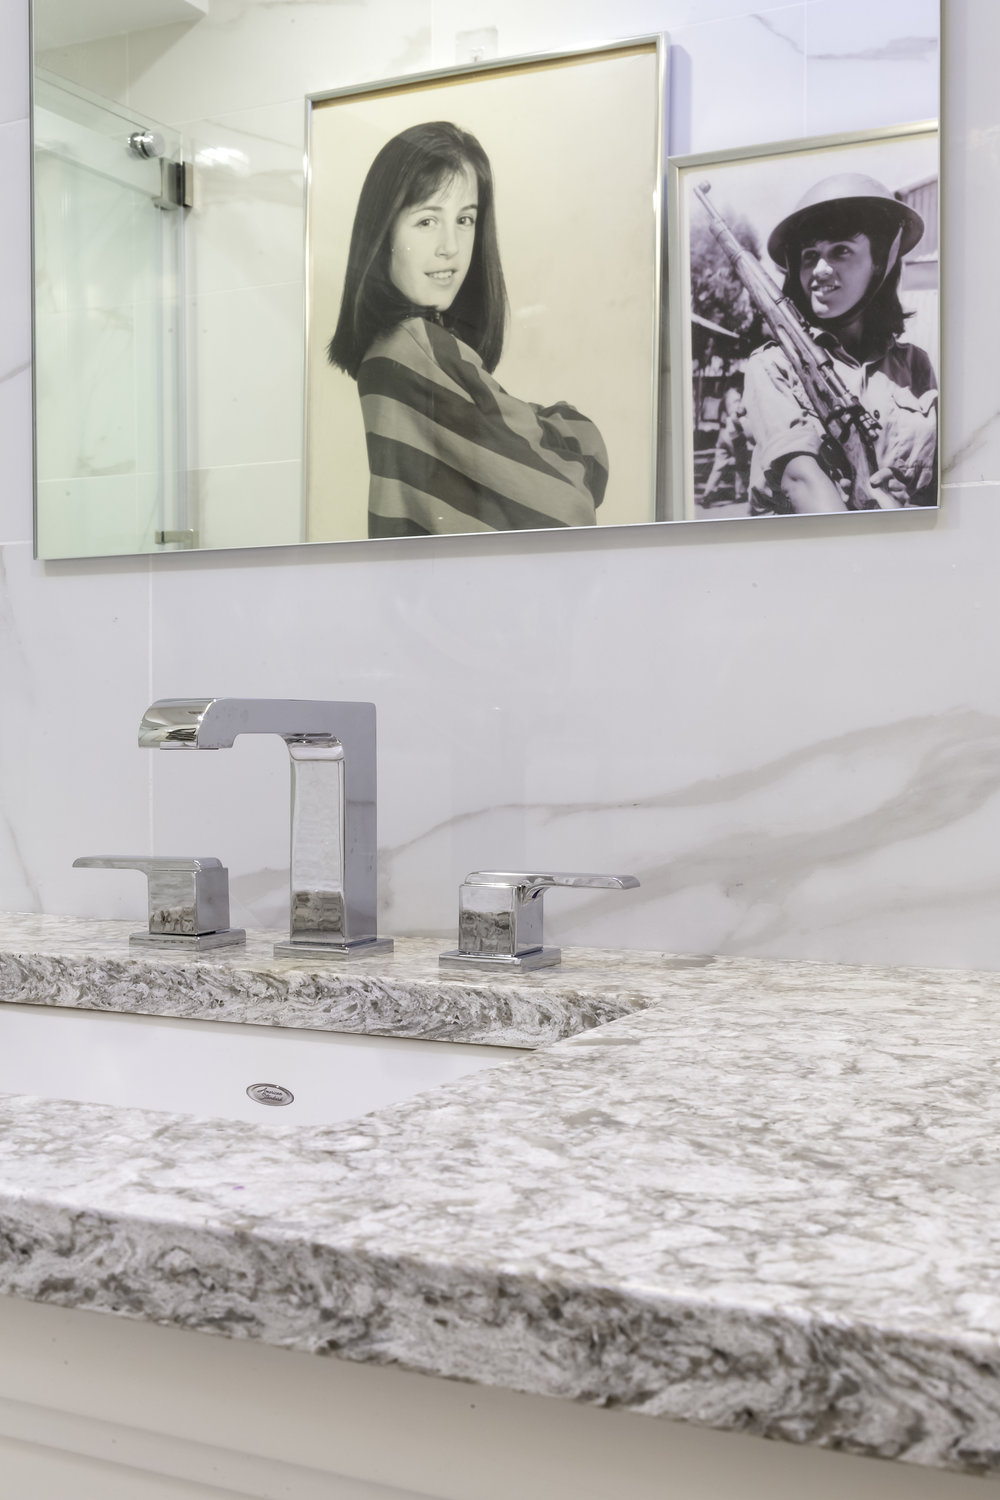 Marble counter with sink and square style faucet